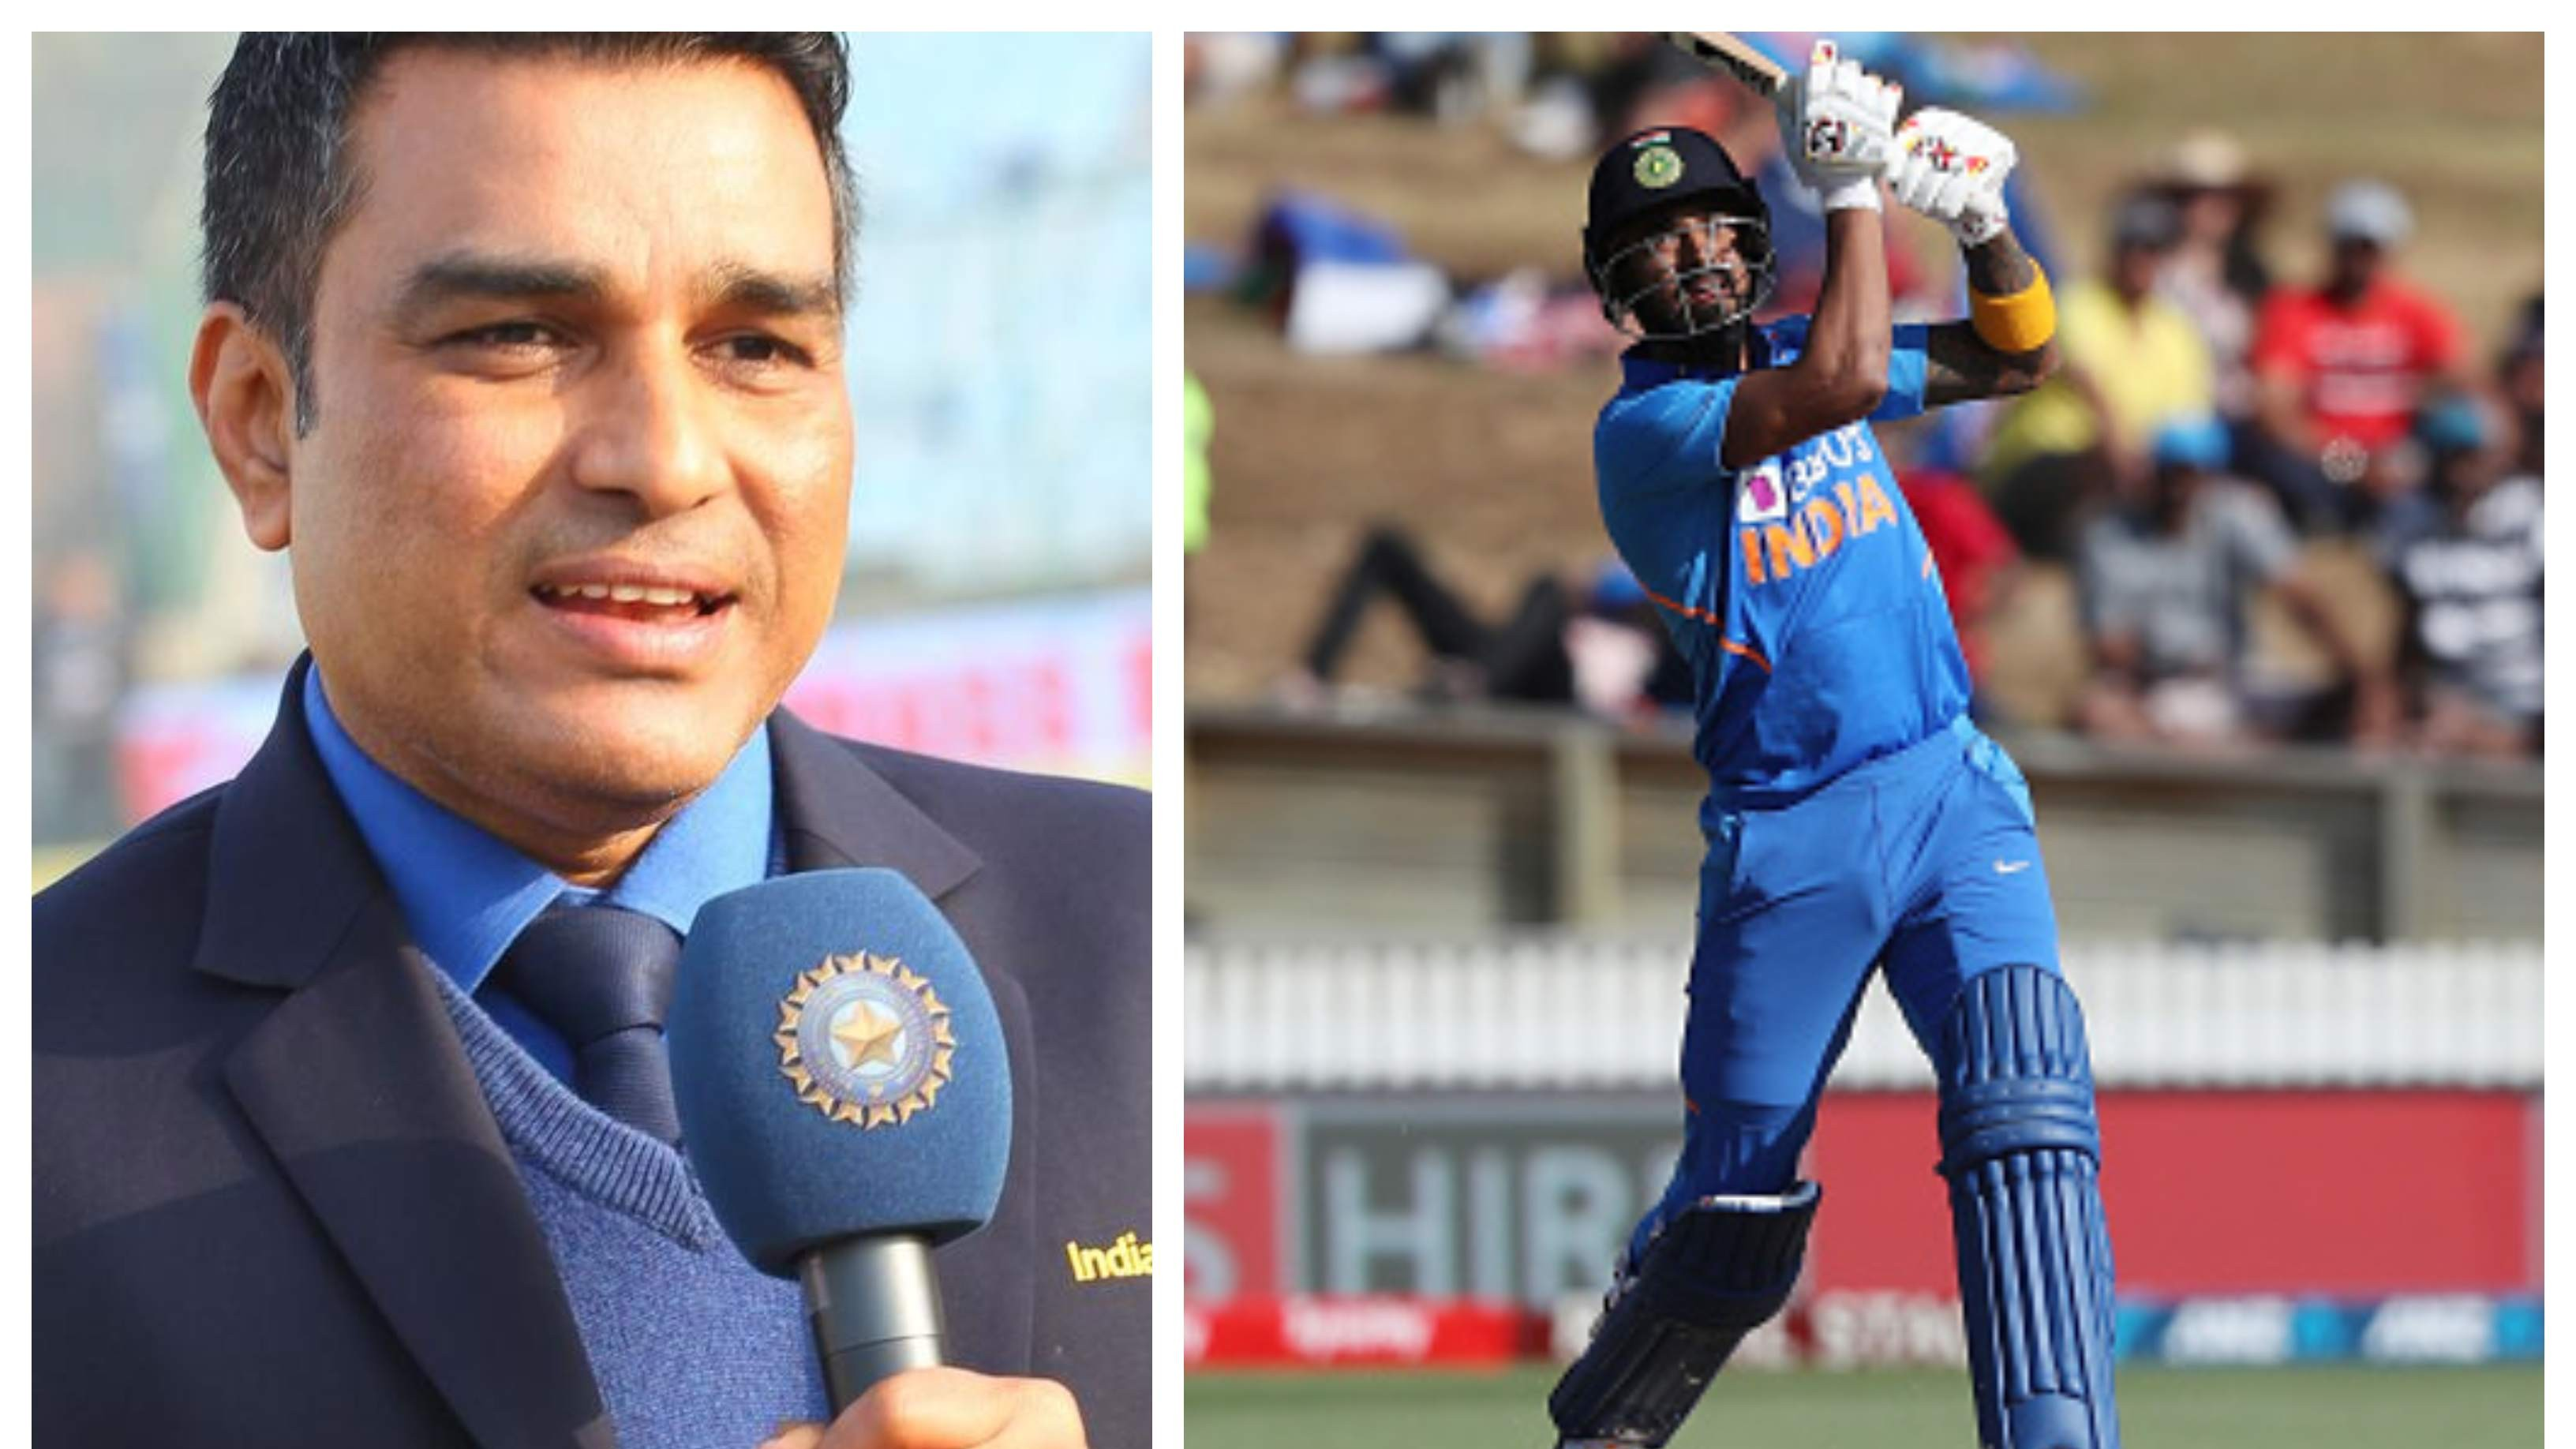 """""""He is the right fit"""" – Manjrekar supports Team India's decision to bat KL Rahul at No. 5 in ODIs"""